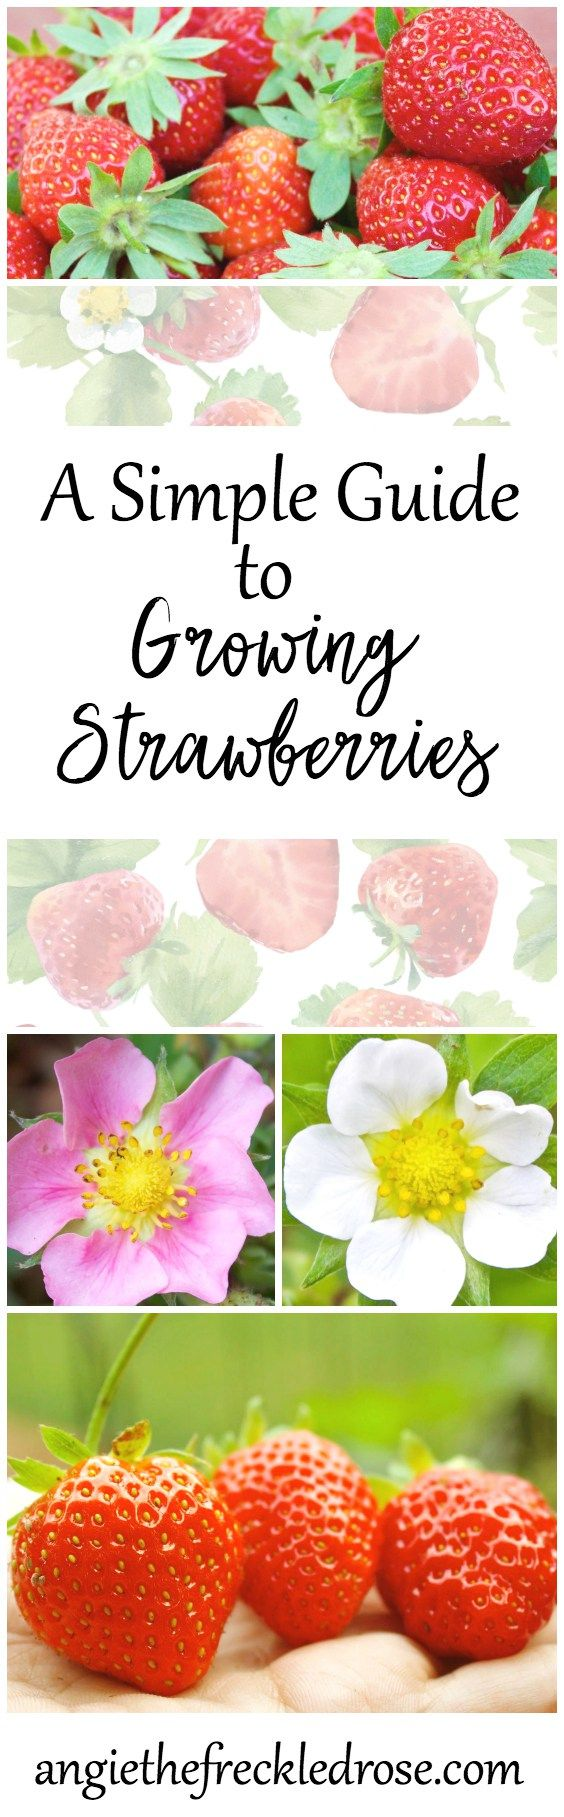 When I first started gardening, I couldn't wait to try growing strawberries! These red berries are jam-packed full of vitamins, fiber and antioxidants. I can never resist a bite of a plump, juicy and sweet strawberry. I remember visiting my local garden nursery and noticing these bright red hanging baskets. As I got closer, I noticed they were filled with flowering strawberry plants. What? You can grow them like this? In fact, you can indeed grow berries in hanging baskets. I will go into…